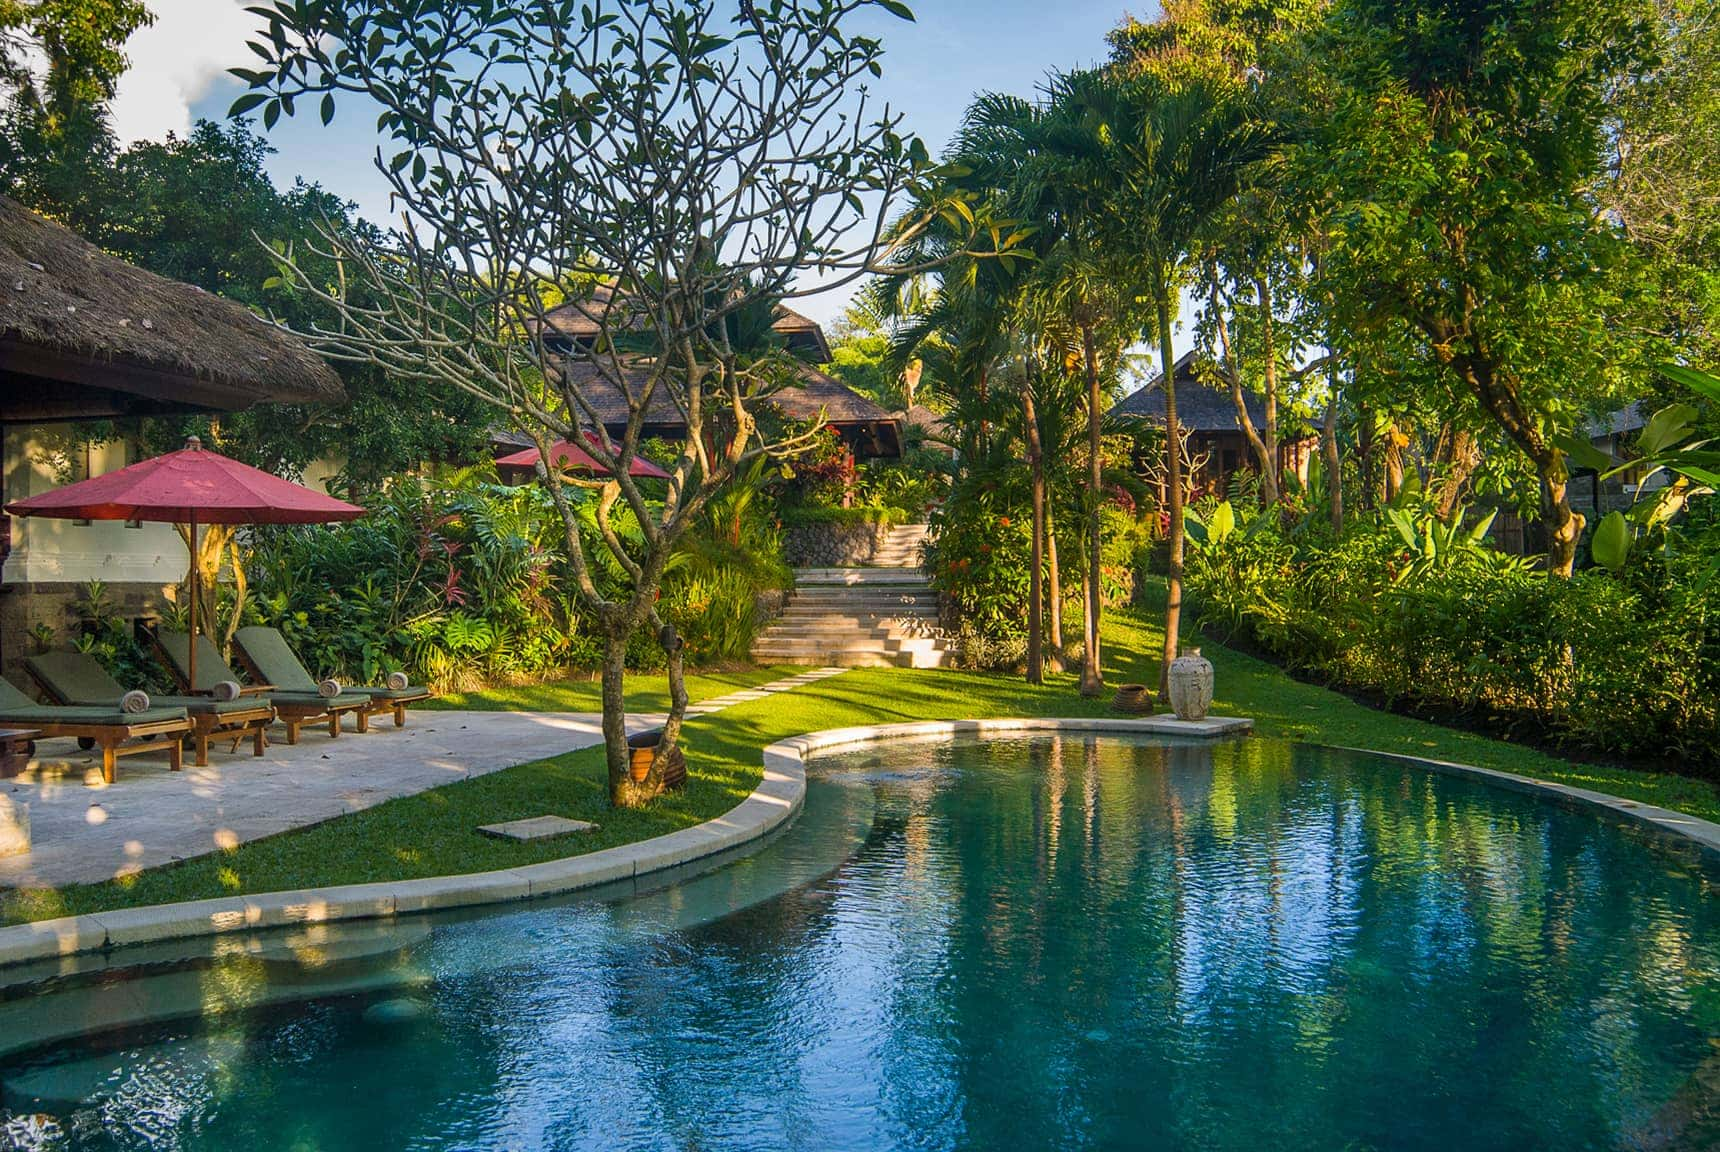 Villa Pangi Gita - Pererenan, Bali Indonesia (Bali villa photography by master photographer Rick Carmichael of LuxViz)